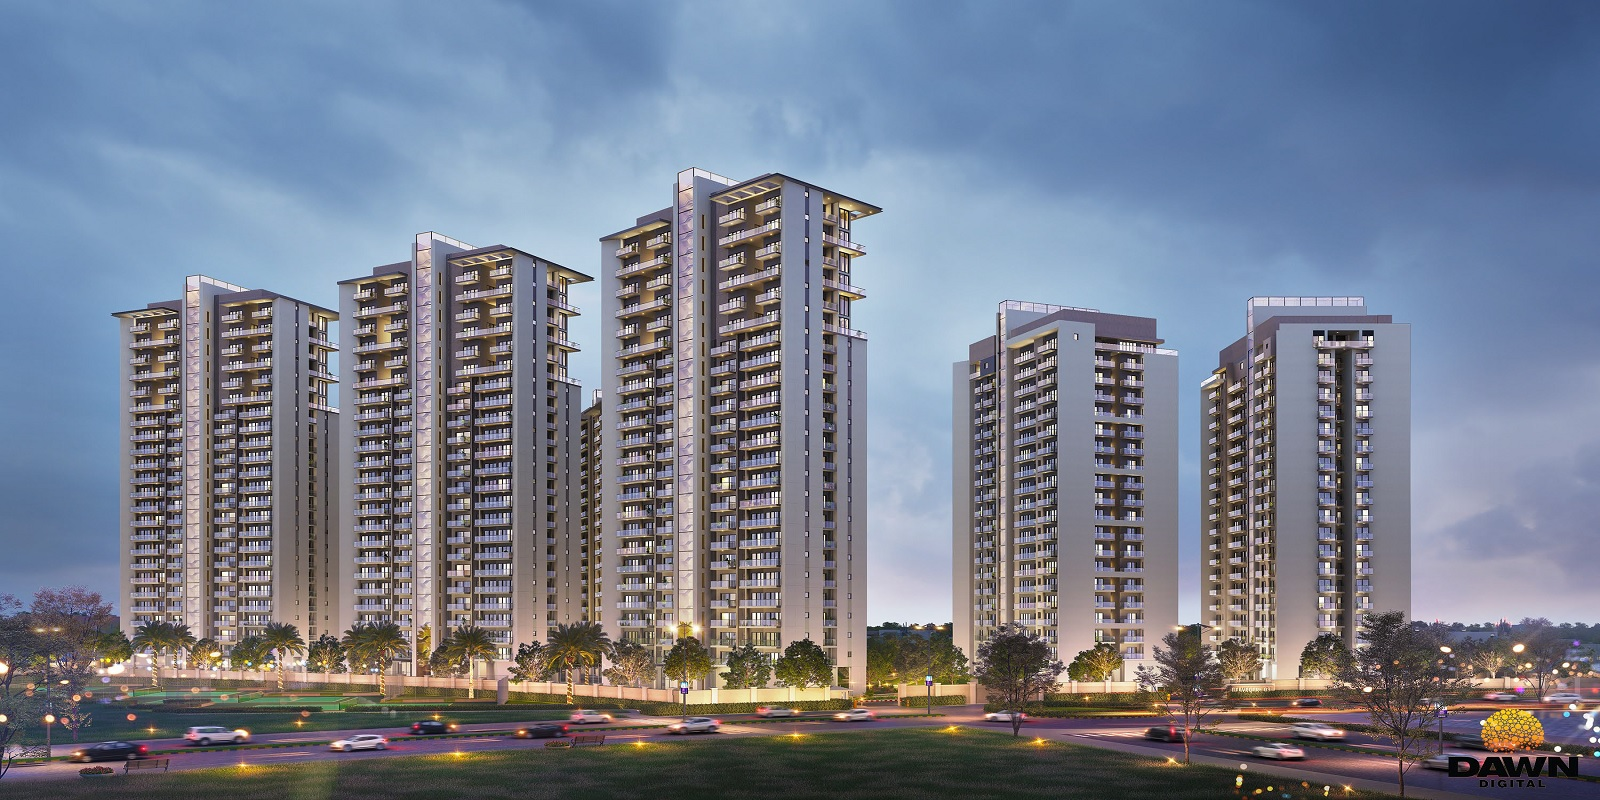 shalimar one world belvedere court 3 project project large image1